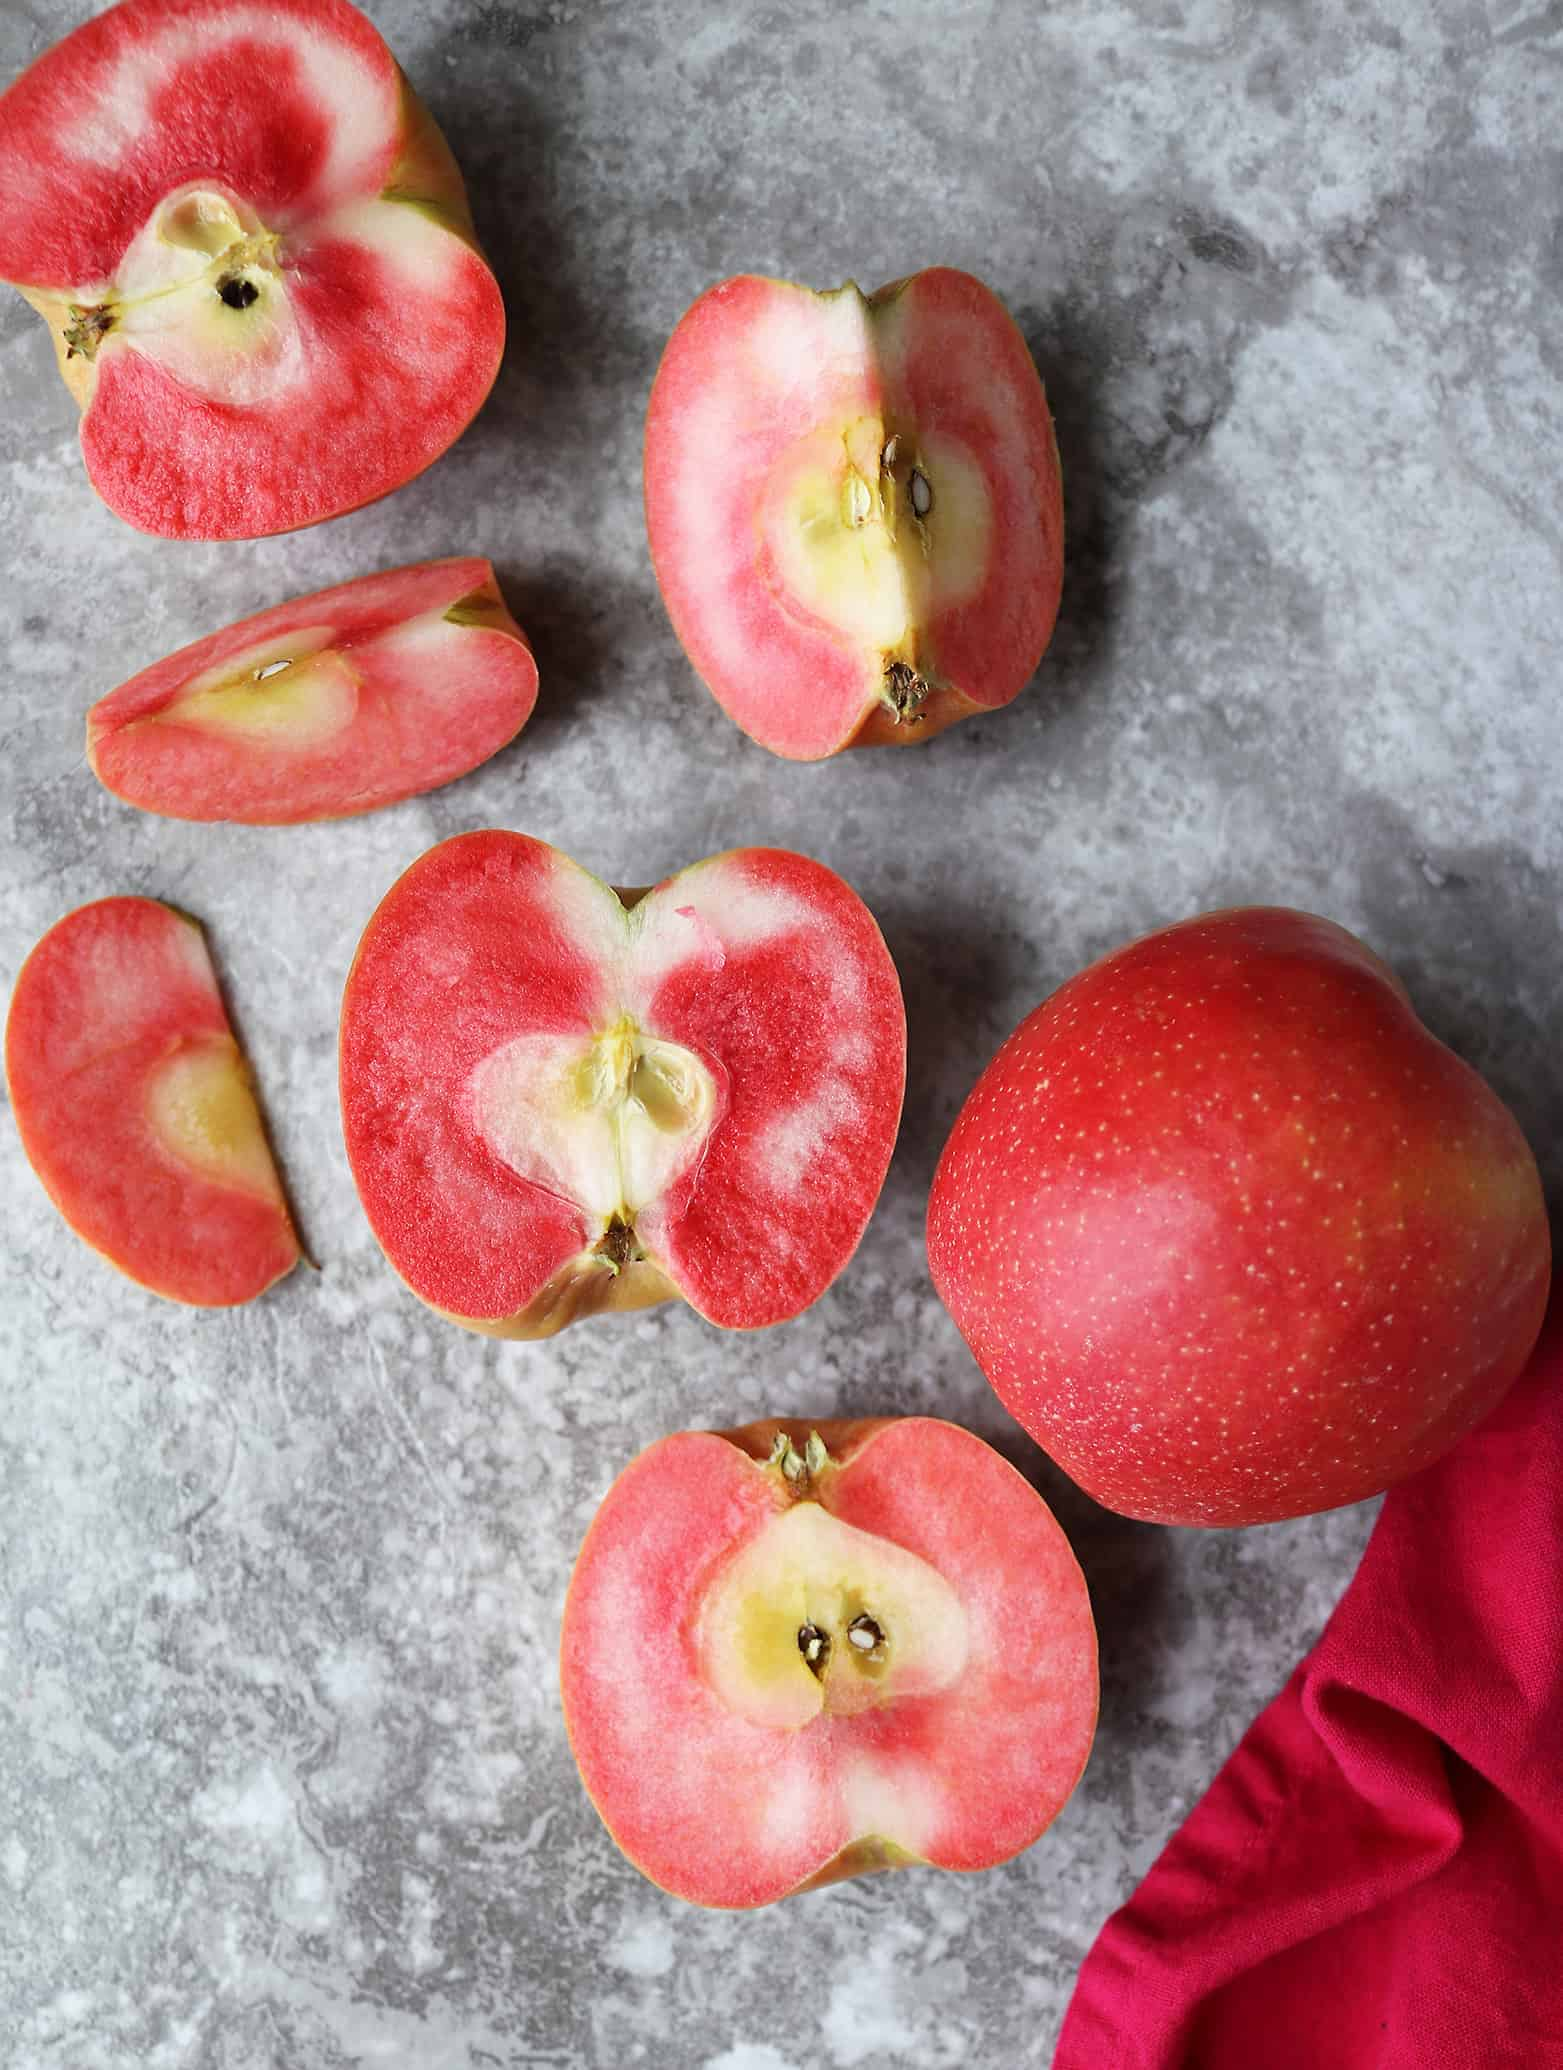 Lucy-Glo Apples At Sprouts Farmers Market